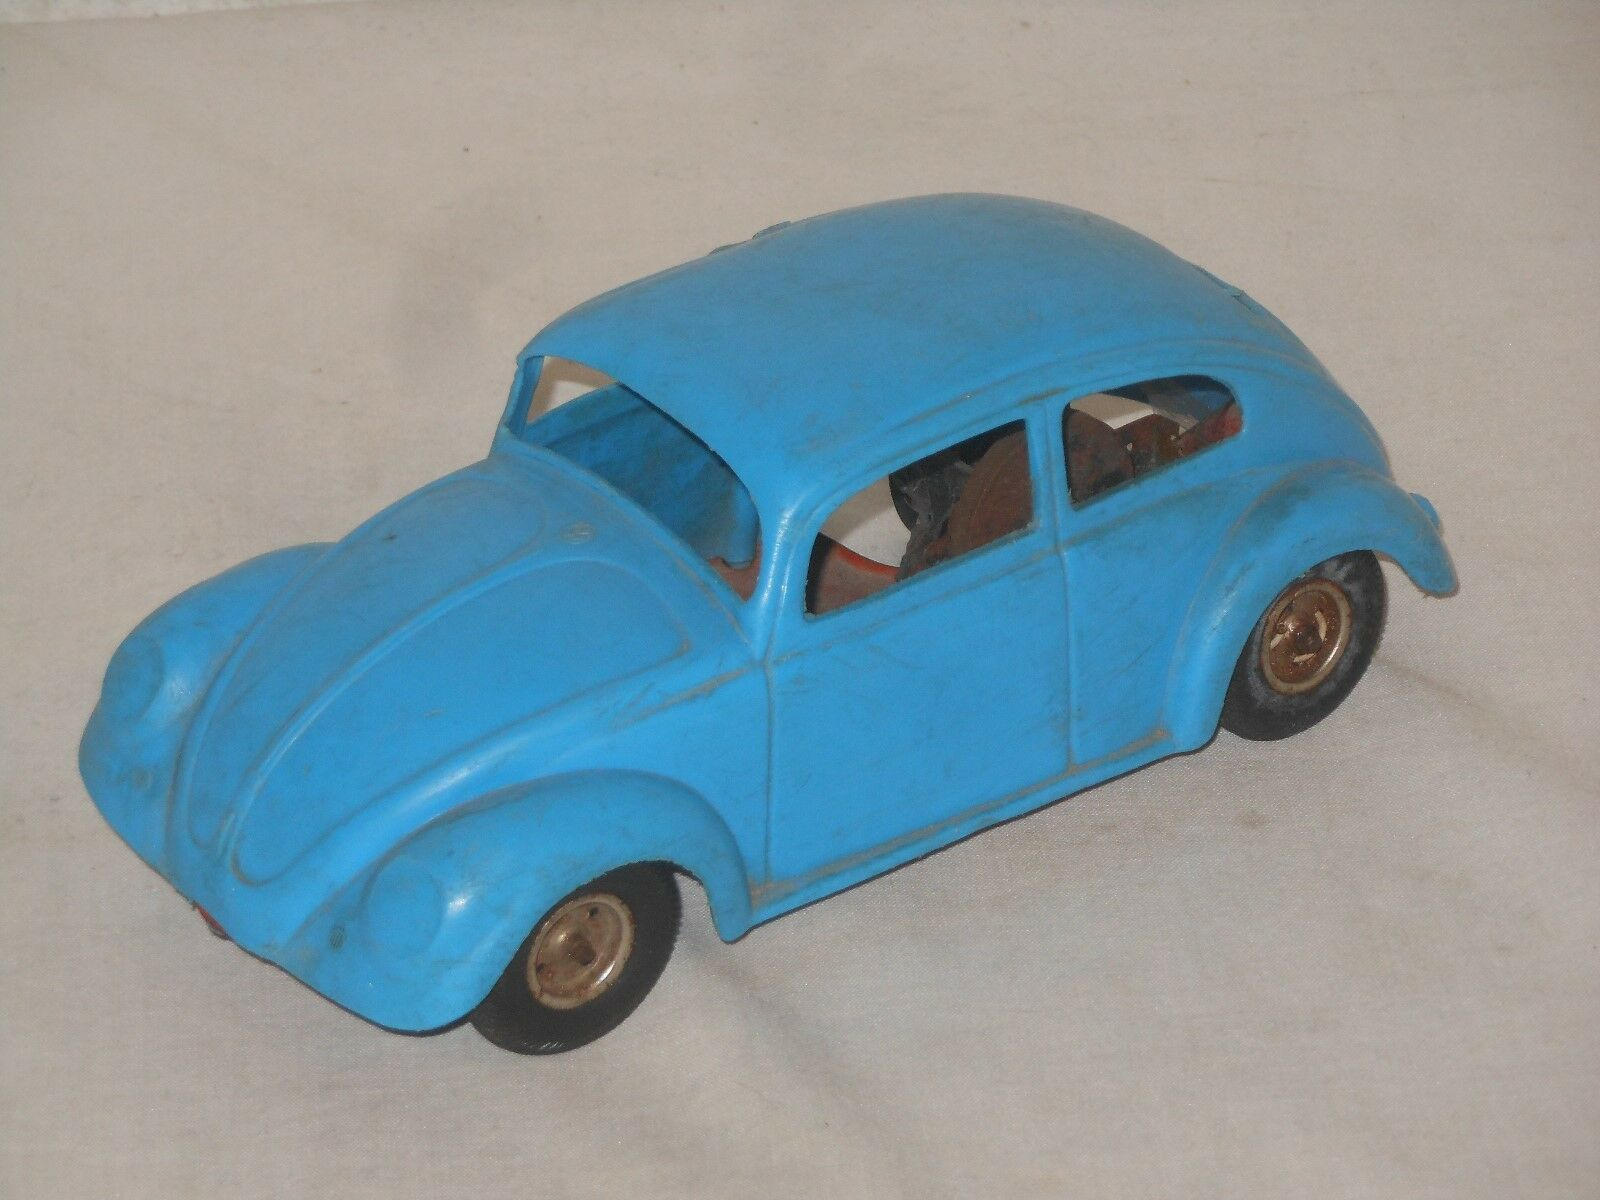 Vintage Toy - Arnold - VW Beetle Beetle - West Germany - 20 cm - bluee 13